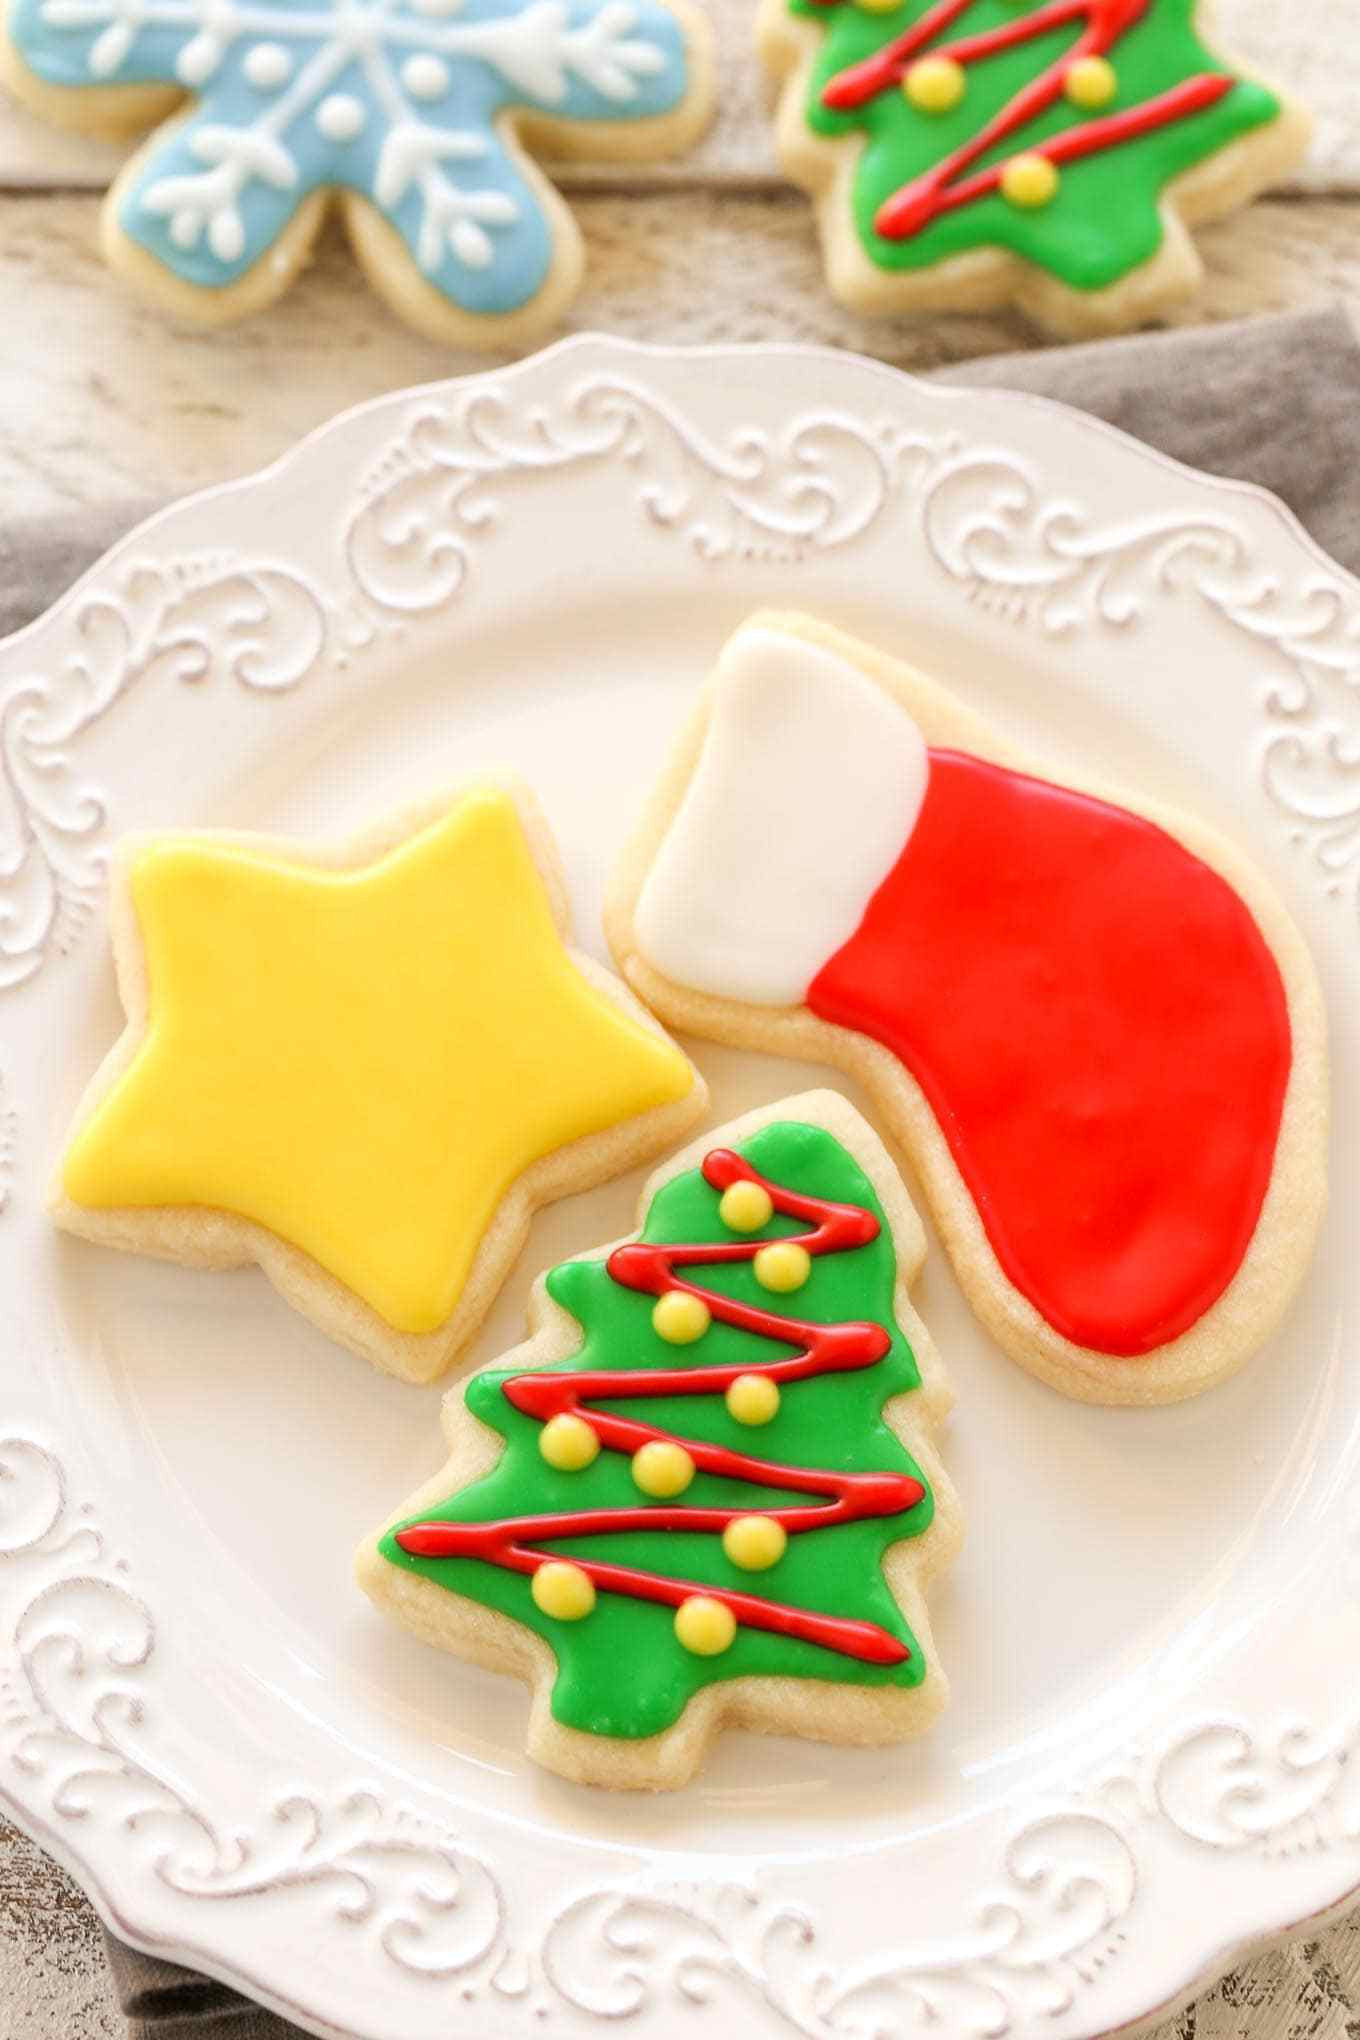 Frosting For Christmas Cutout Cookies  Soft Christmas Cut Out Sugar Cookies Live Well Bake ten